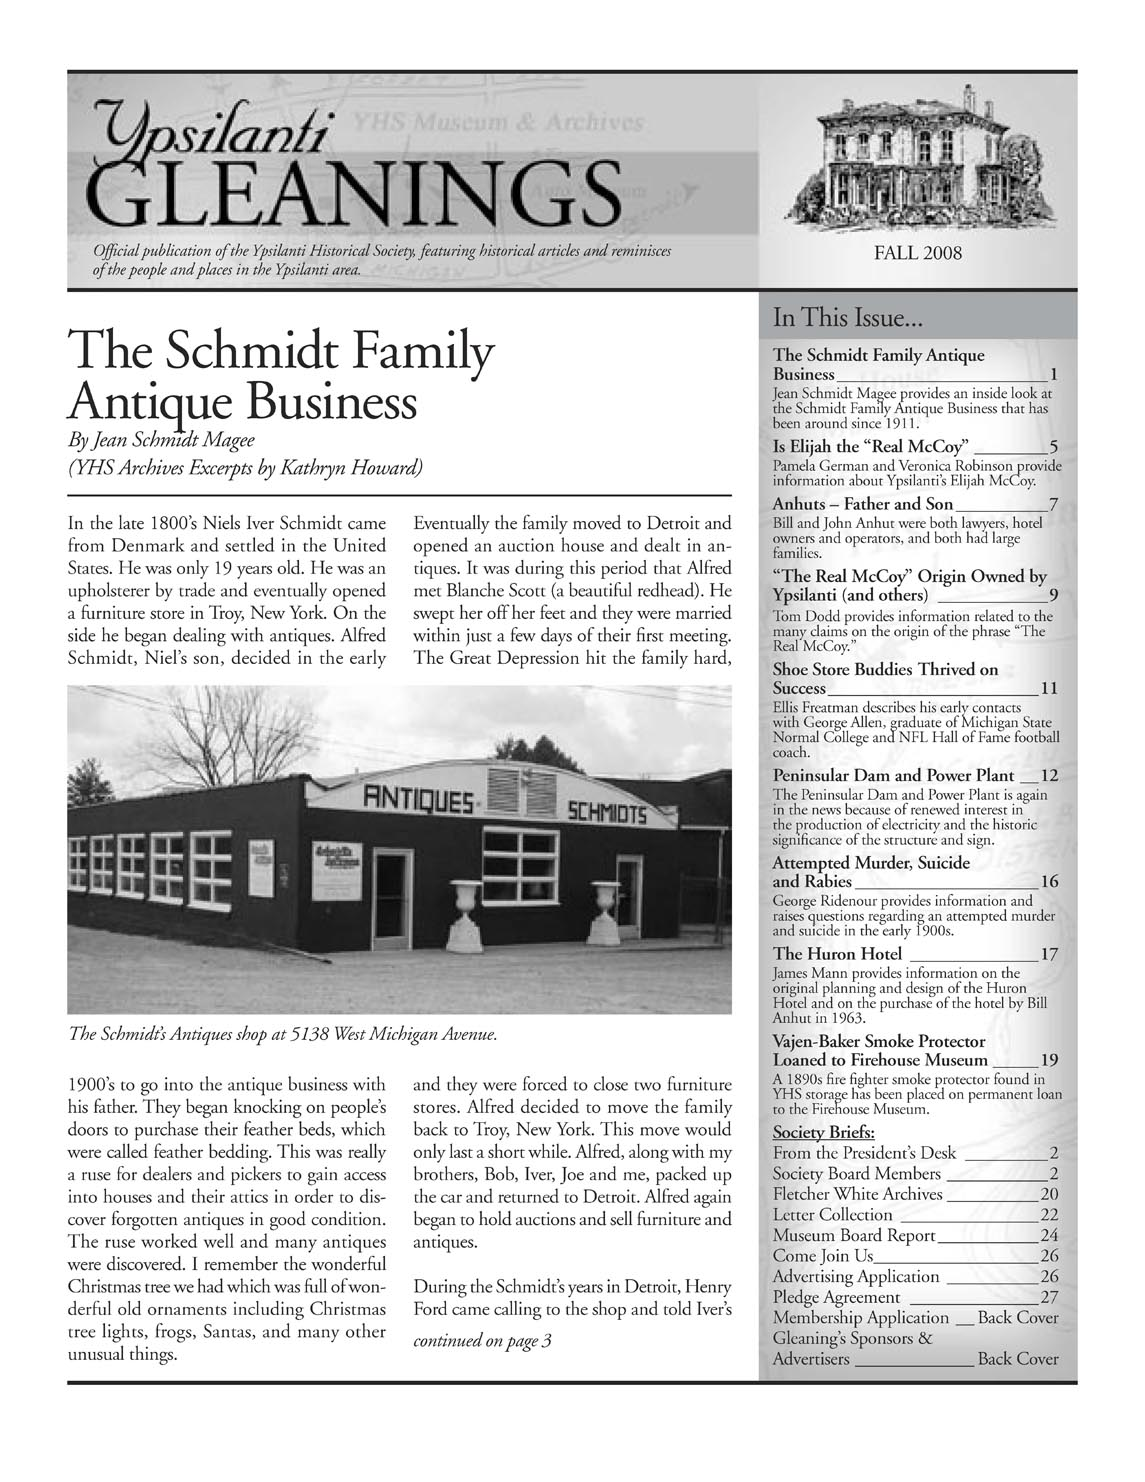 Ypsilanti Gleanings, Fall 2008 image